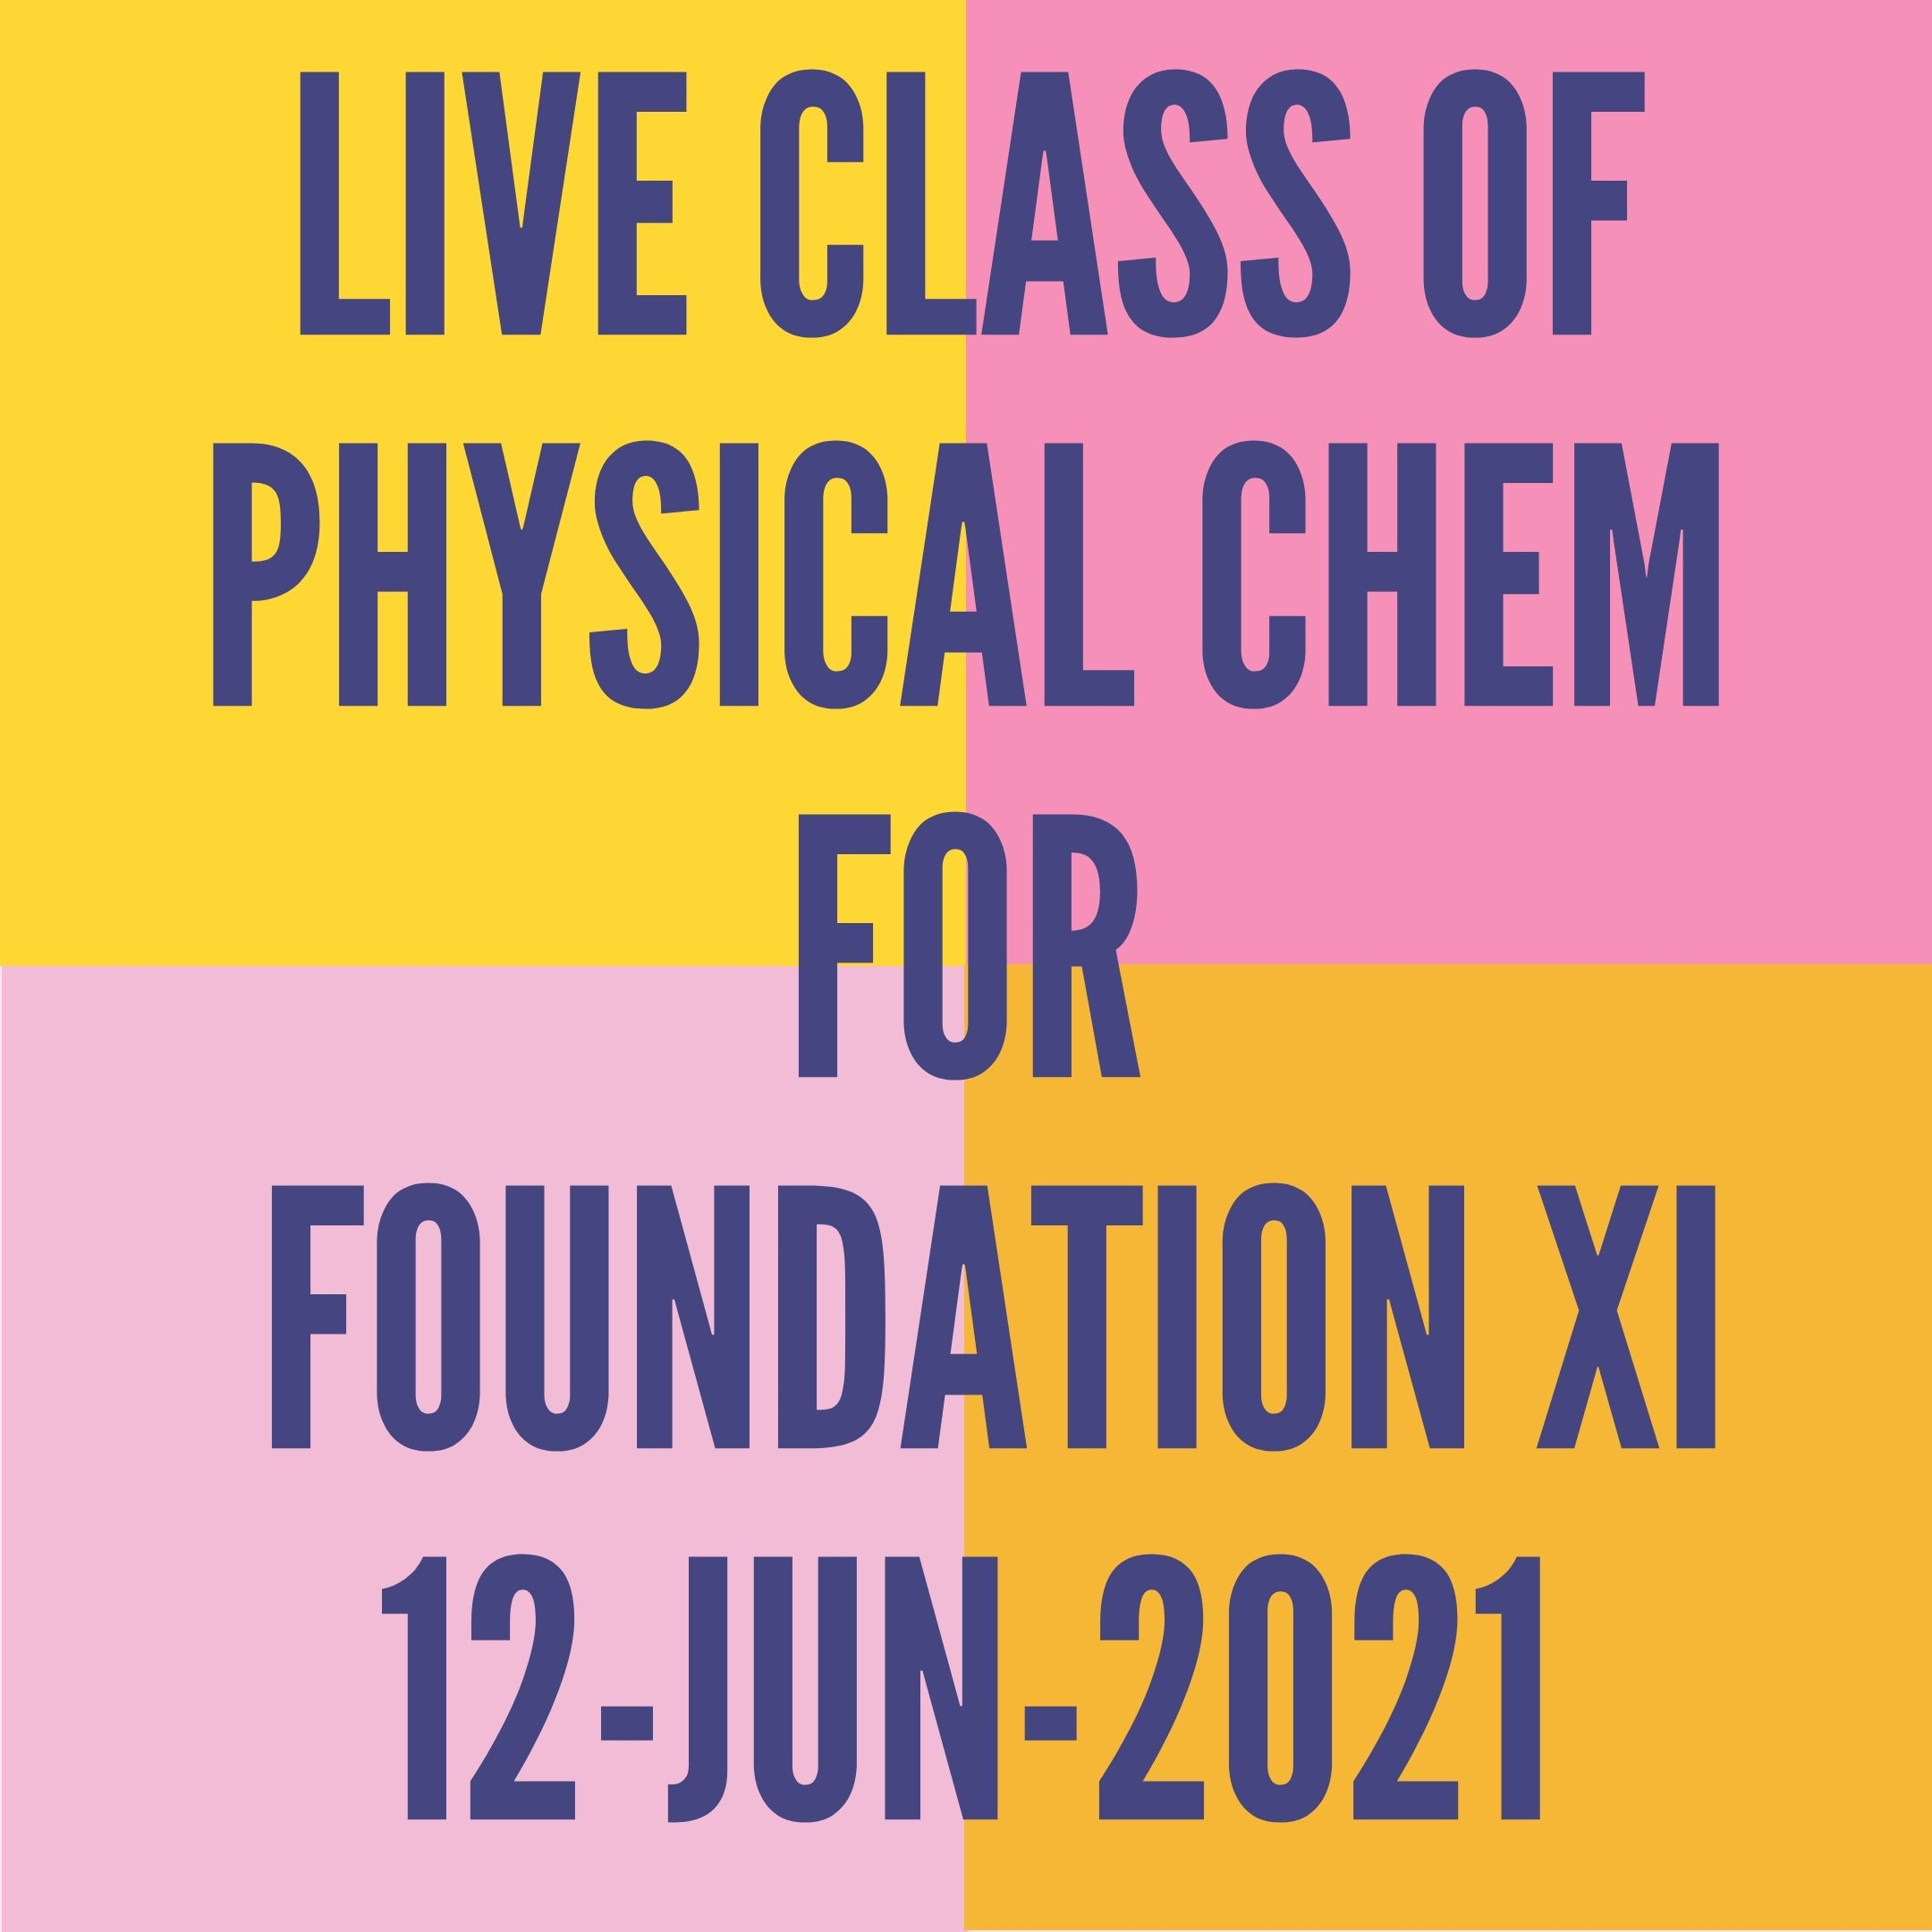 LIVE CLASS OF PHYSICAL CHEMISTRY FOR FOUNDATION XI (12-JUN-2021)SOME BASIC CONCEPT- MOLE